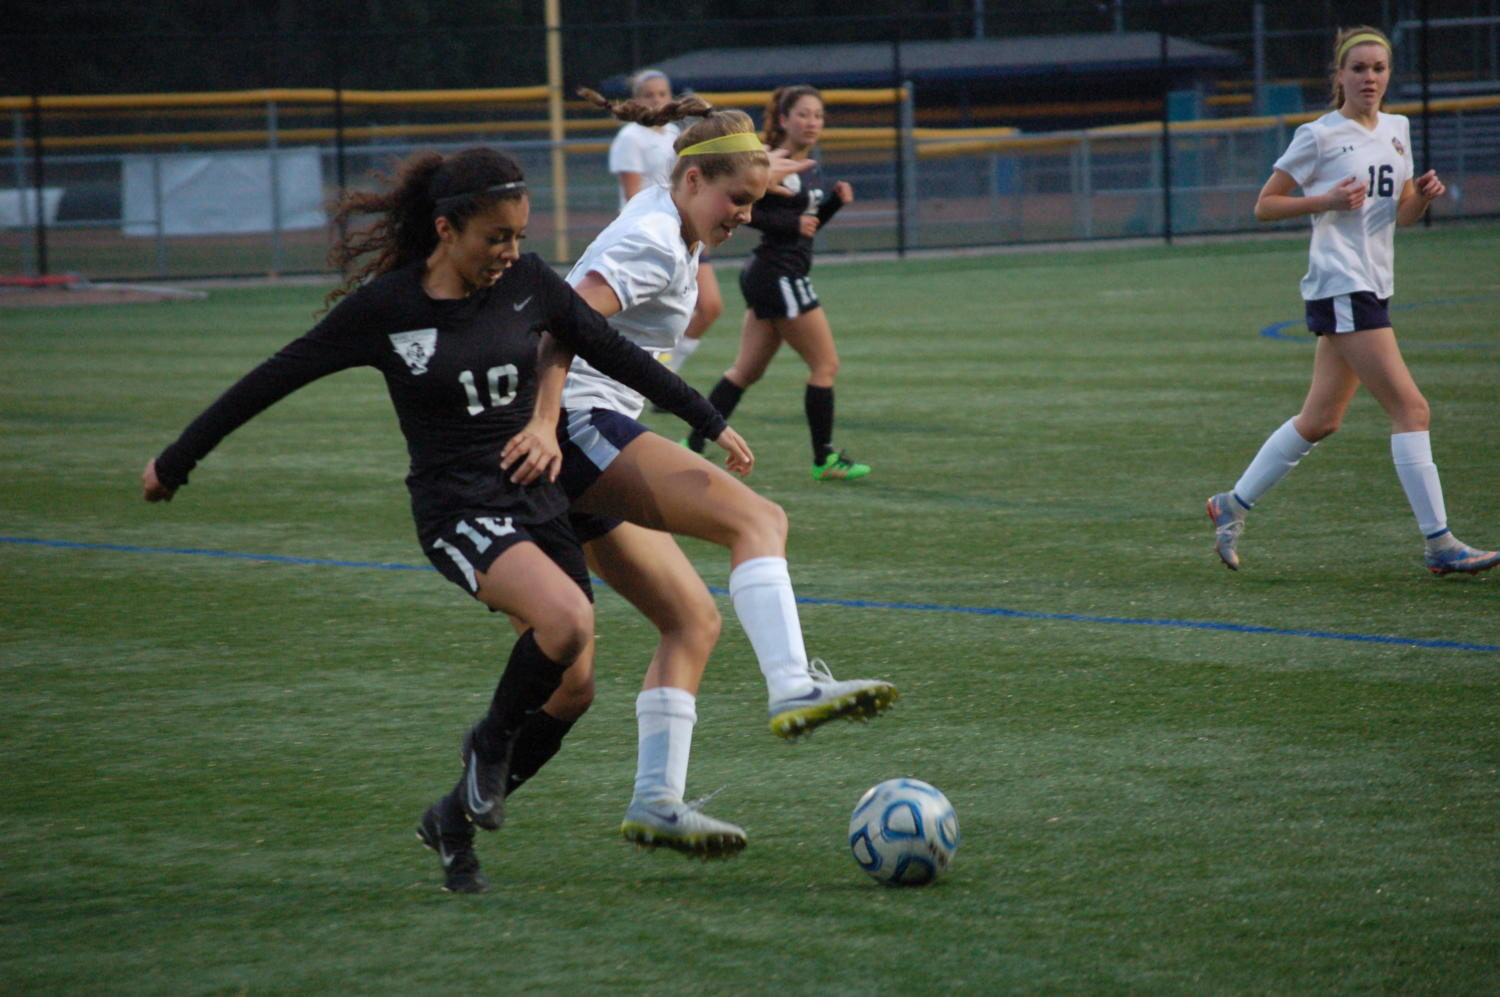 Sophomore Dahlia Jerovsek fights for the ball in the last contest against West Ottawa